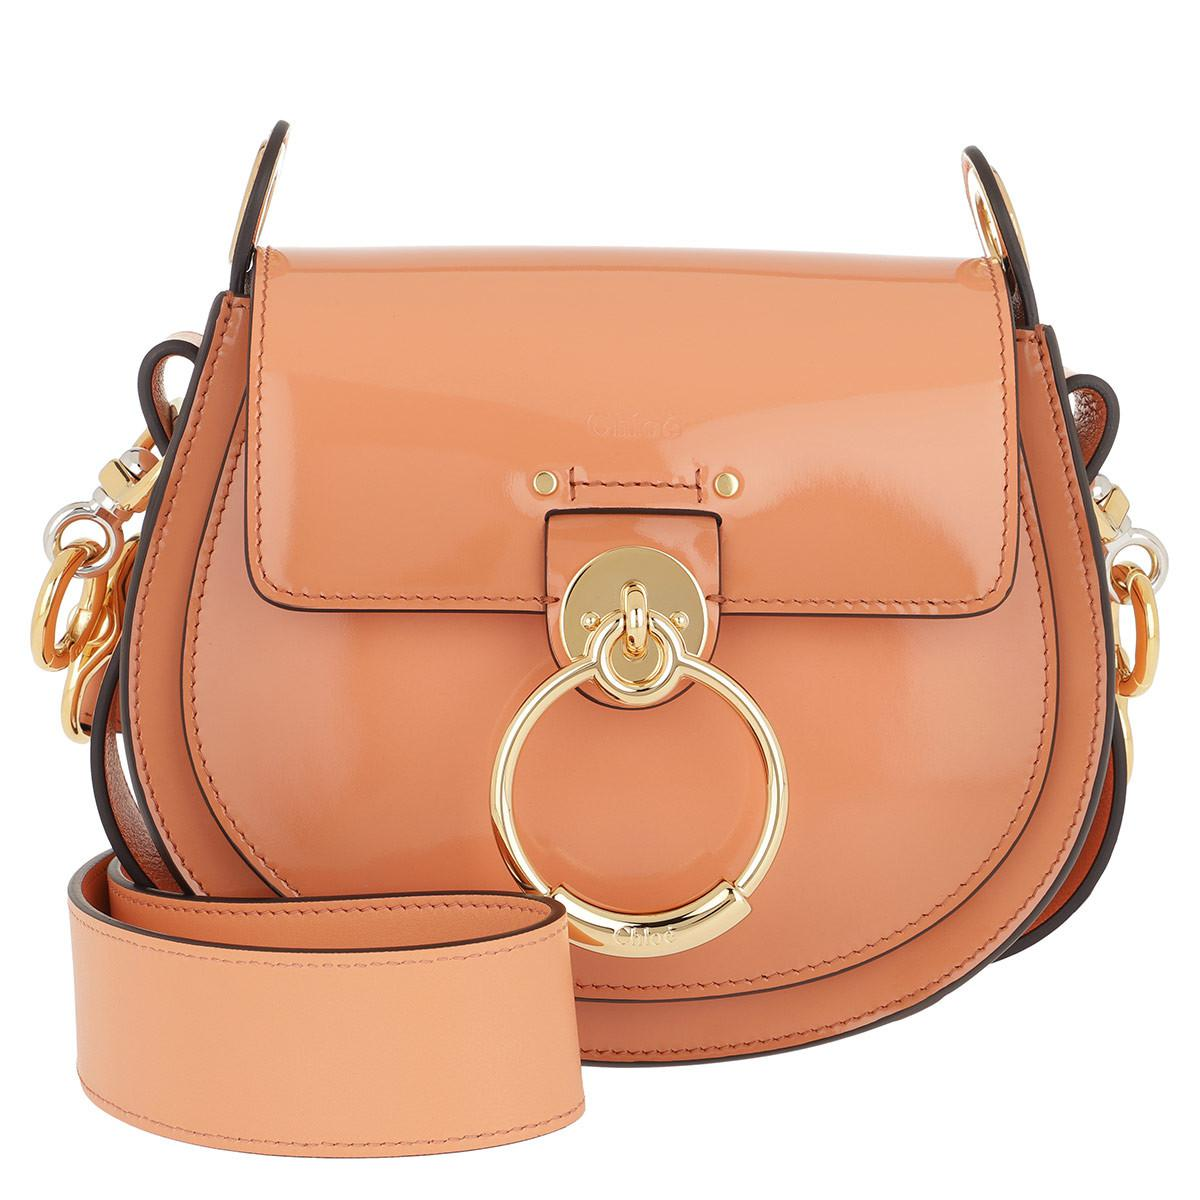 4c8c2b1bf3 Chloé Tess Shoulder Bag Small Leather Canyon Sunset - Lyst